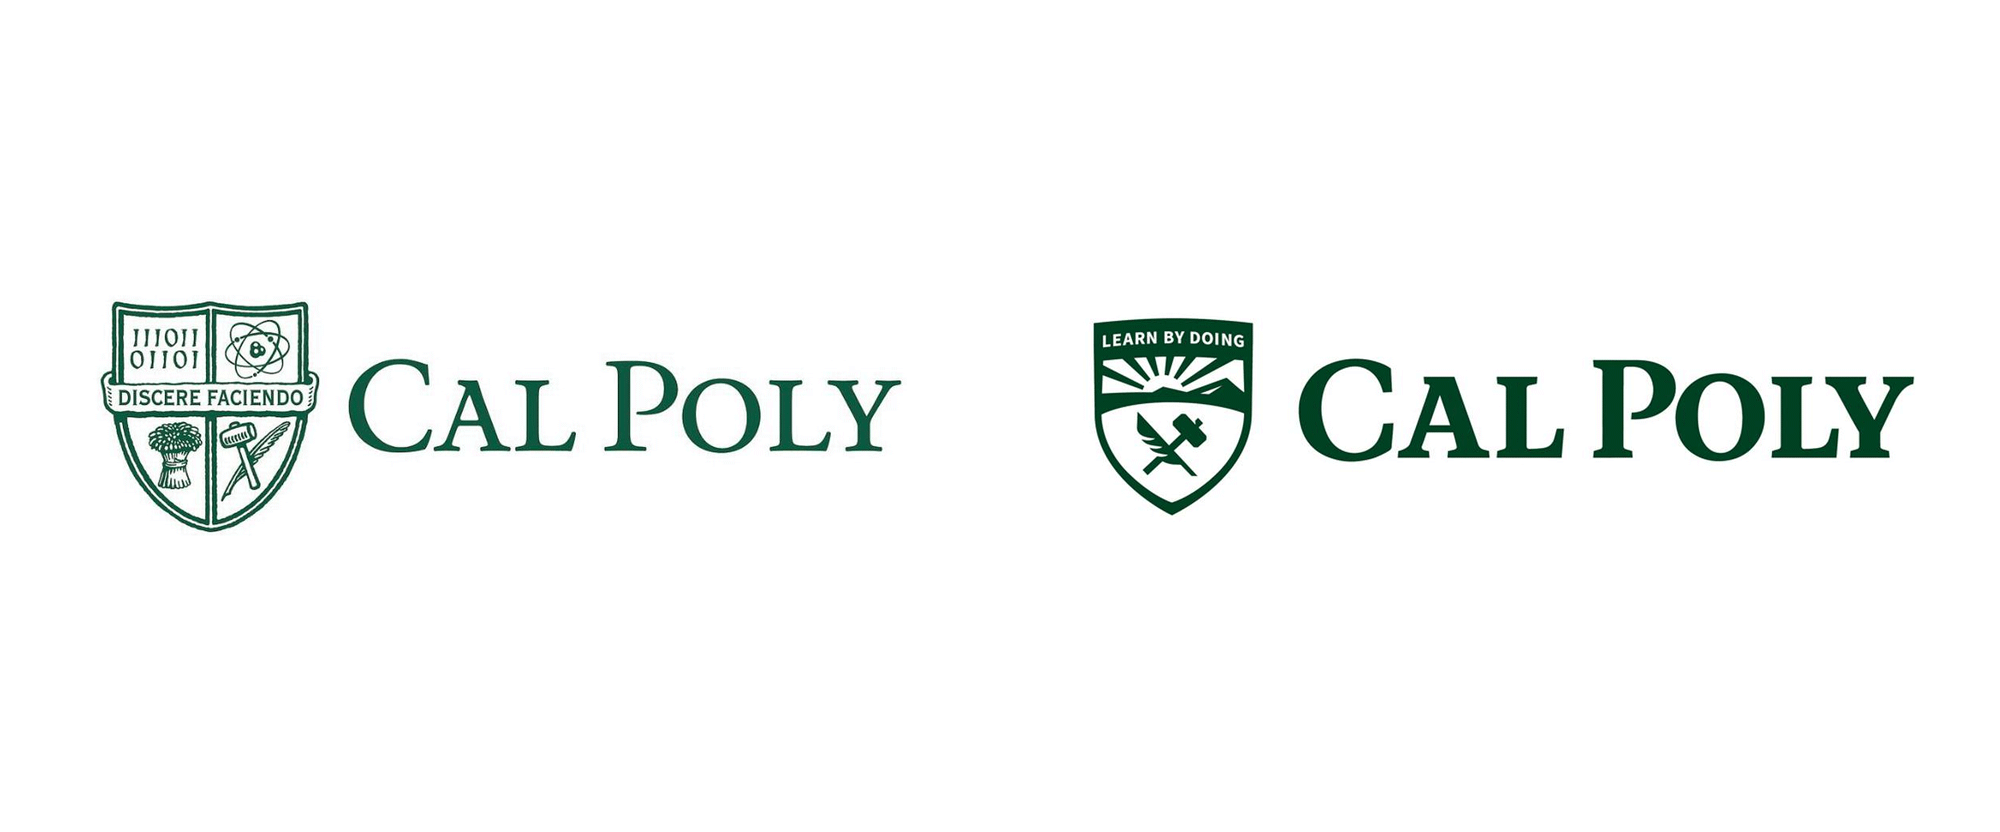 New Logo for Cal Poly by SimpsonScarborough